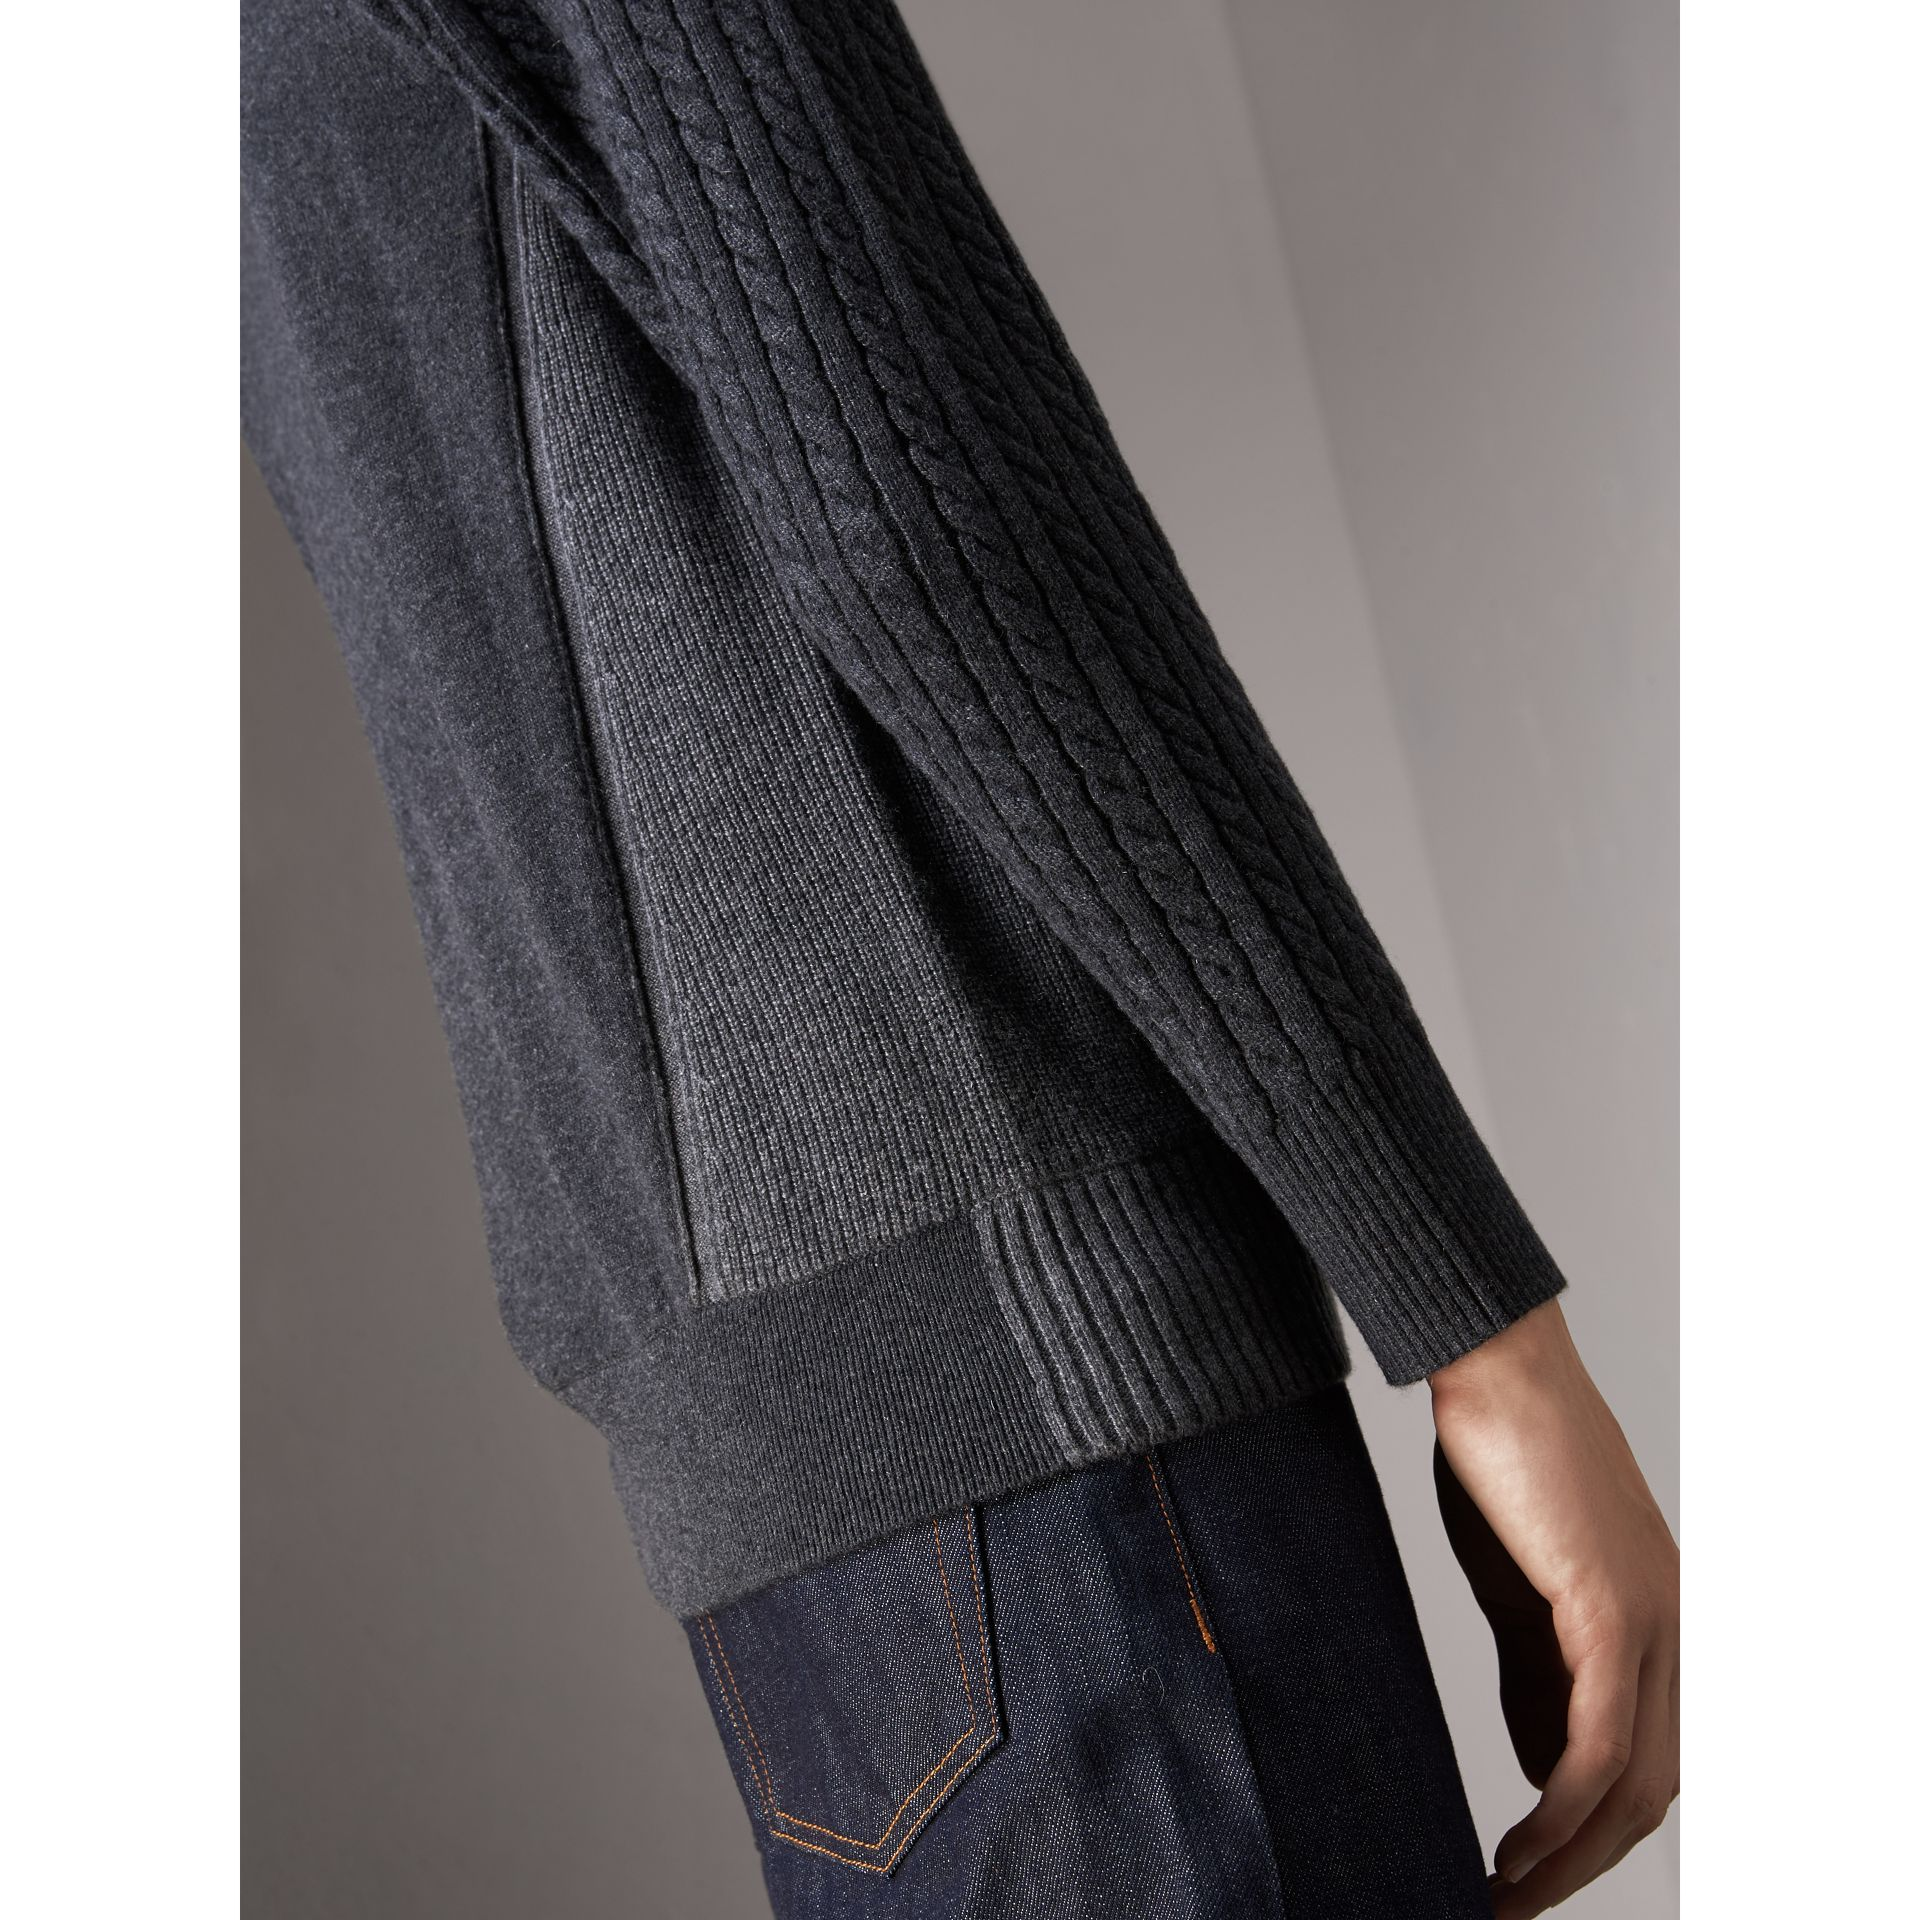 Two-tone Cable Knit Cashmere Sweater in Charcoal - Men | Burberry Canada - gallery image 2